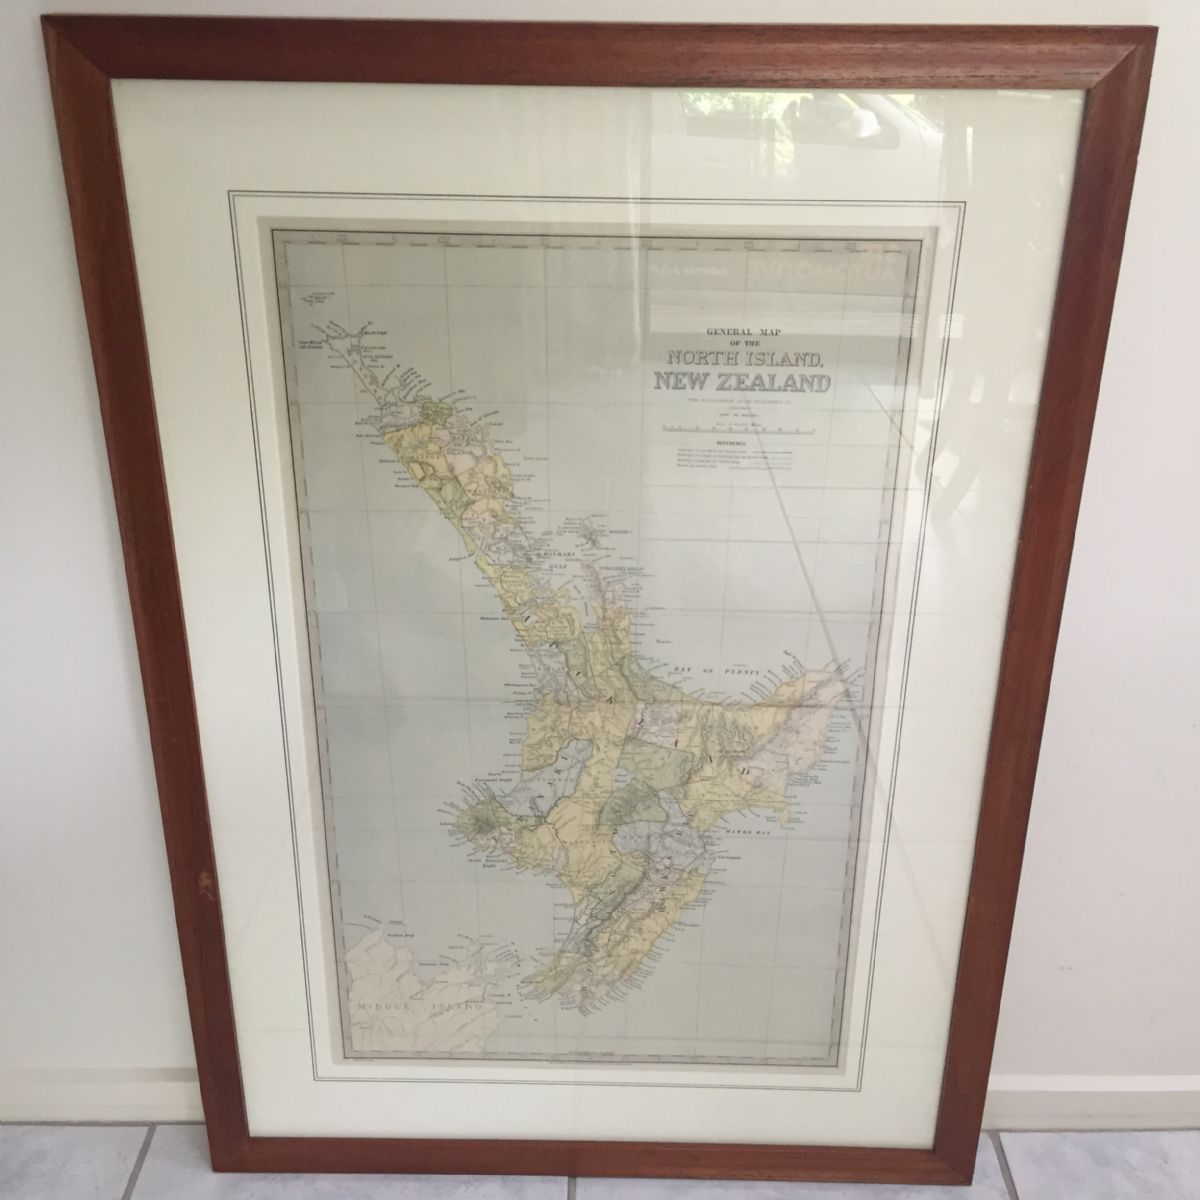 General Map of the North Island, New Zealand